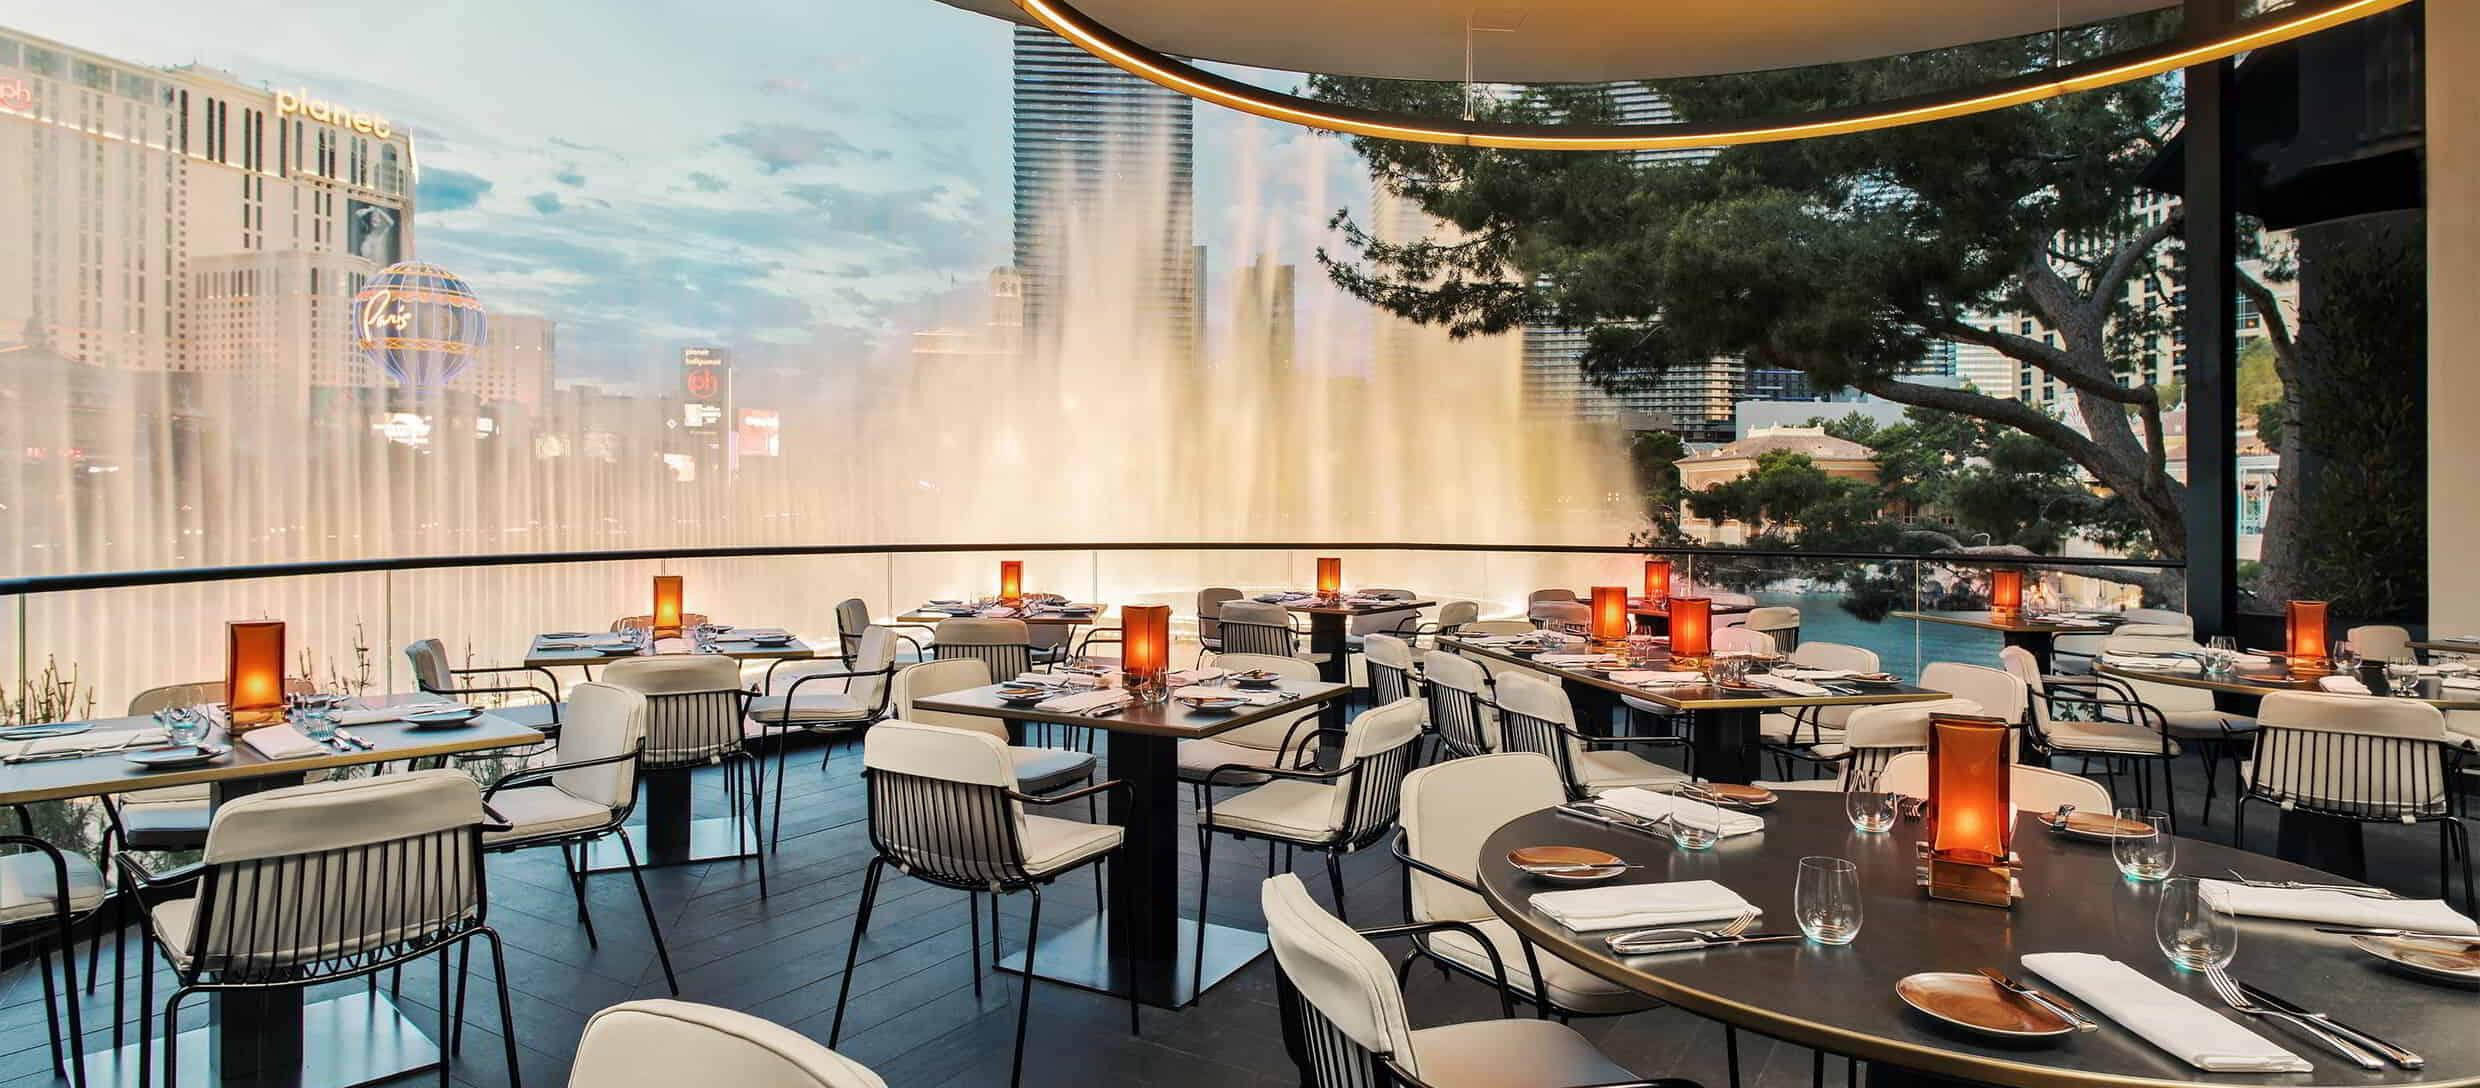 The restaurant is beautifully situated for al fresco dining in front of the Fountains of Bellagio.